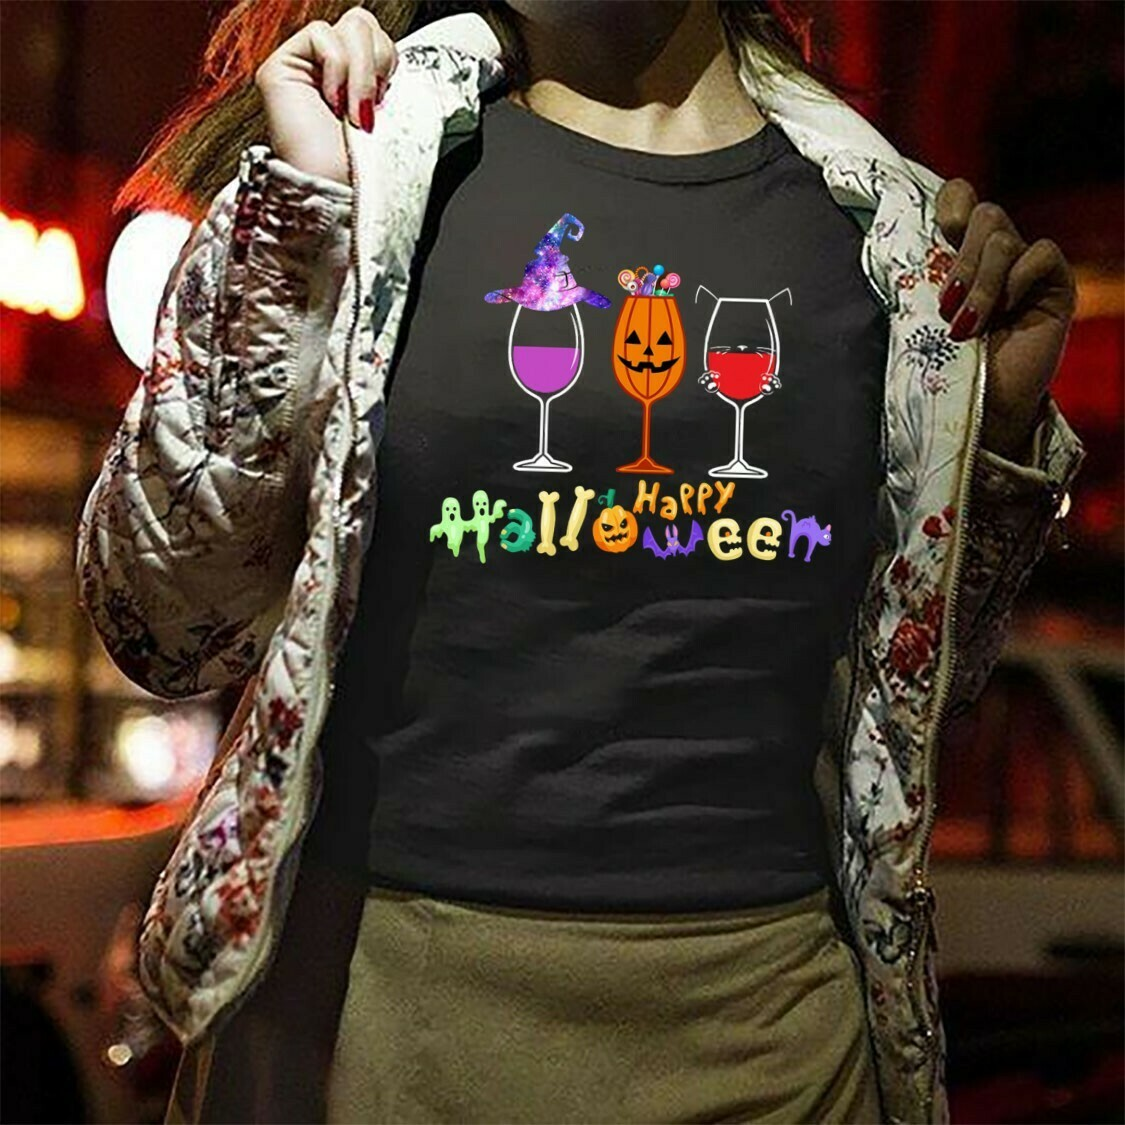 Three Wine Glasses Happy Halloween Wine Glasses Cosplay Witch Trick Or Treat Kitty Gifts For Best Friend Family Halloween Party T-shirt Long Sleeve Sweatshirt Hoodie Jolly Family Gifts